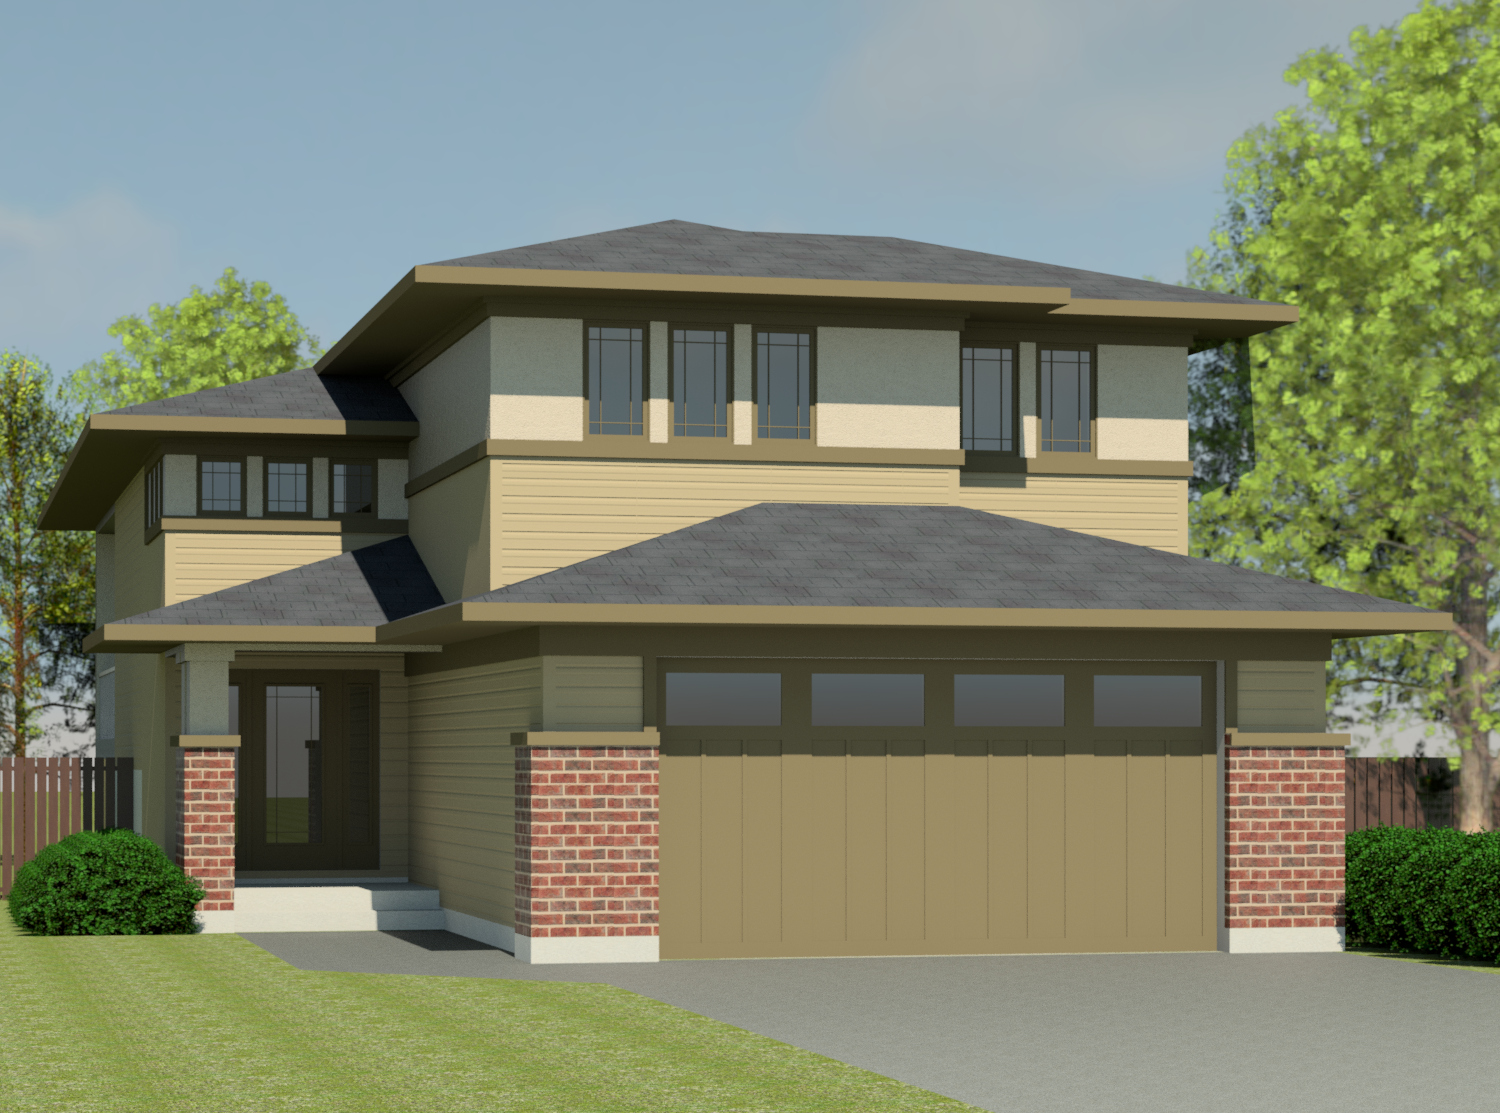 Prairie clearbrook 1540 robinson plans for Prairie house designs